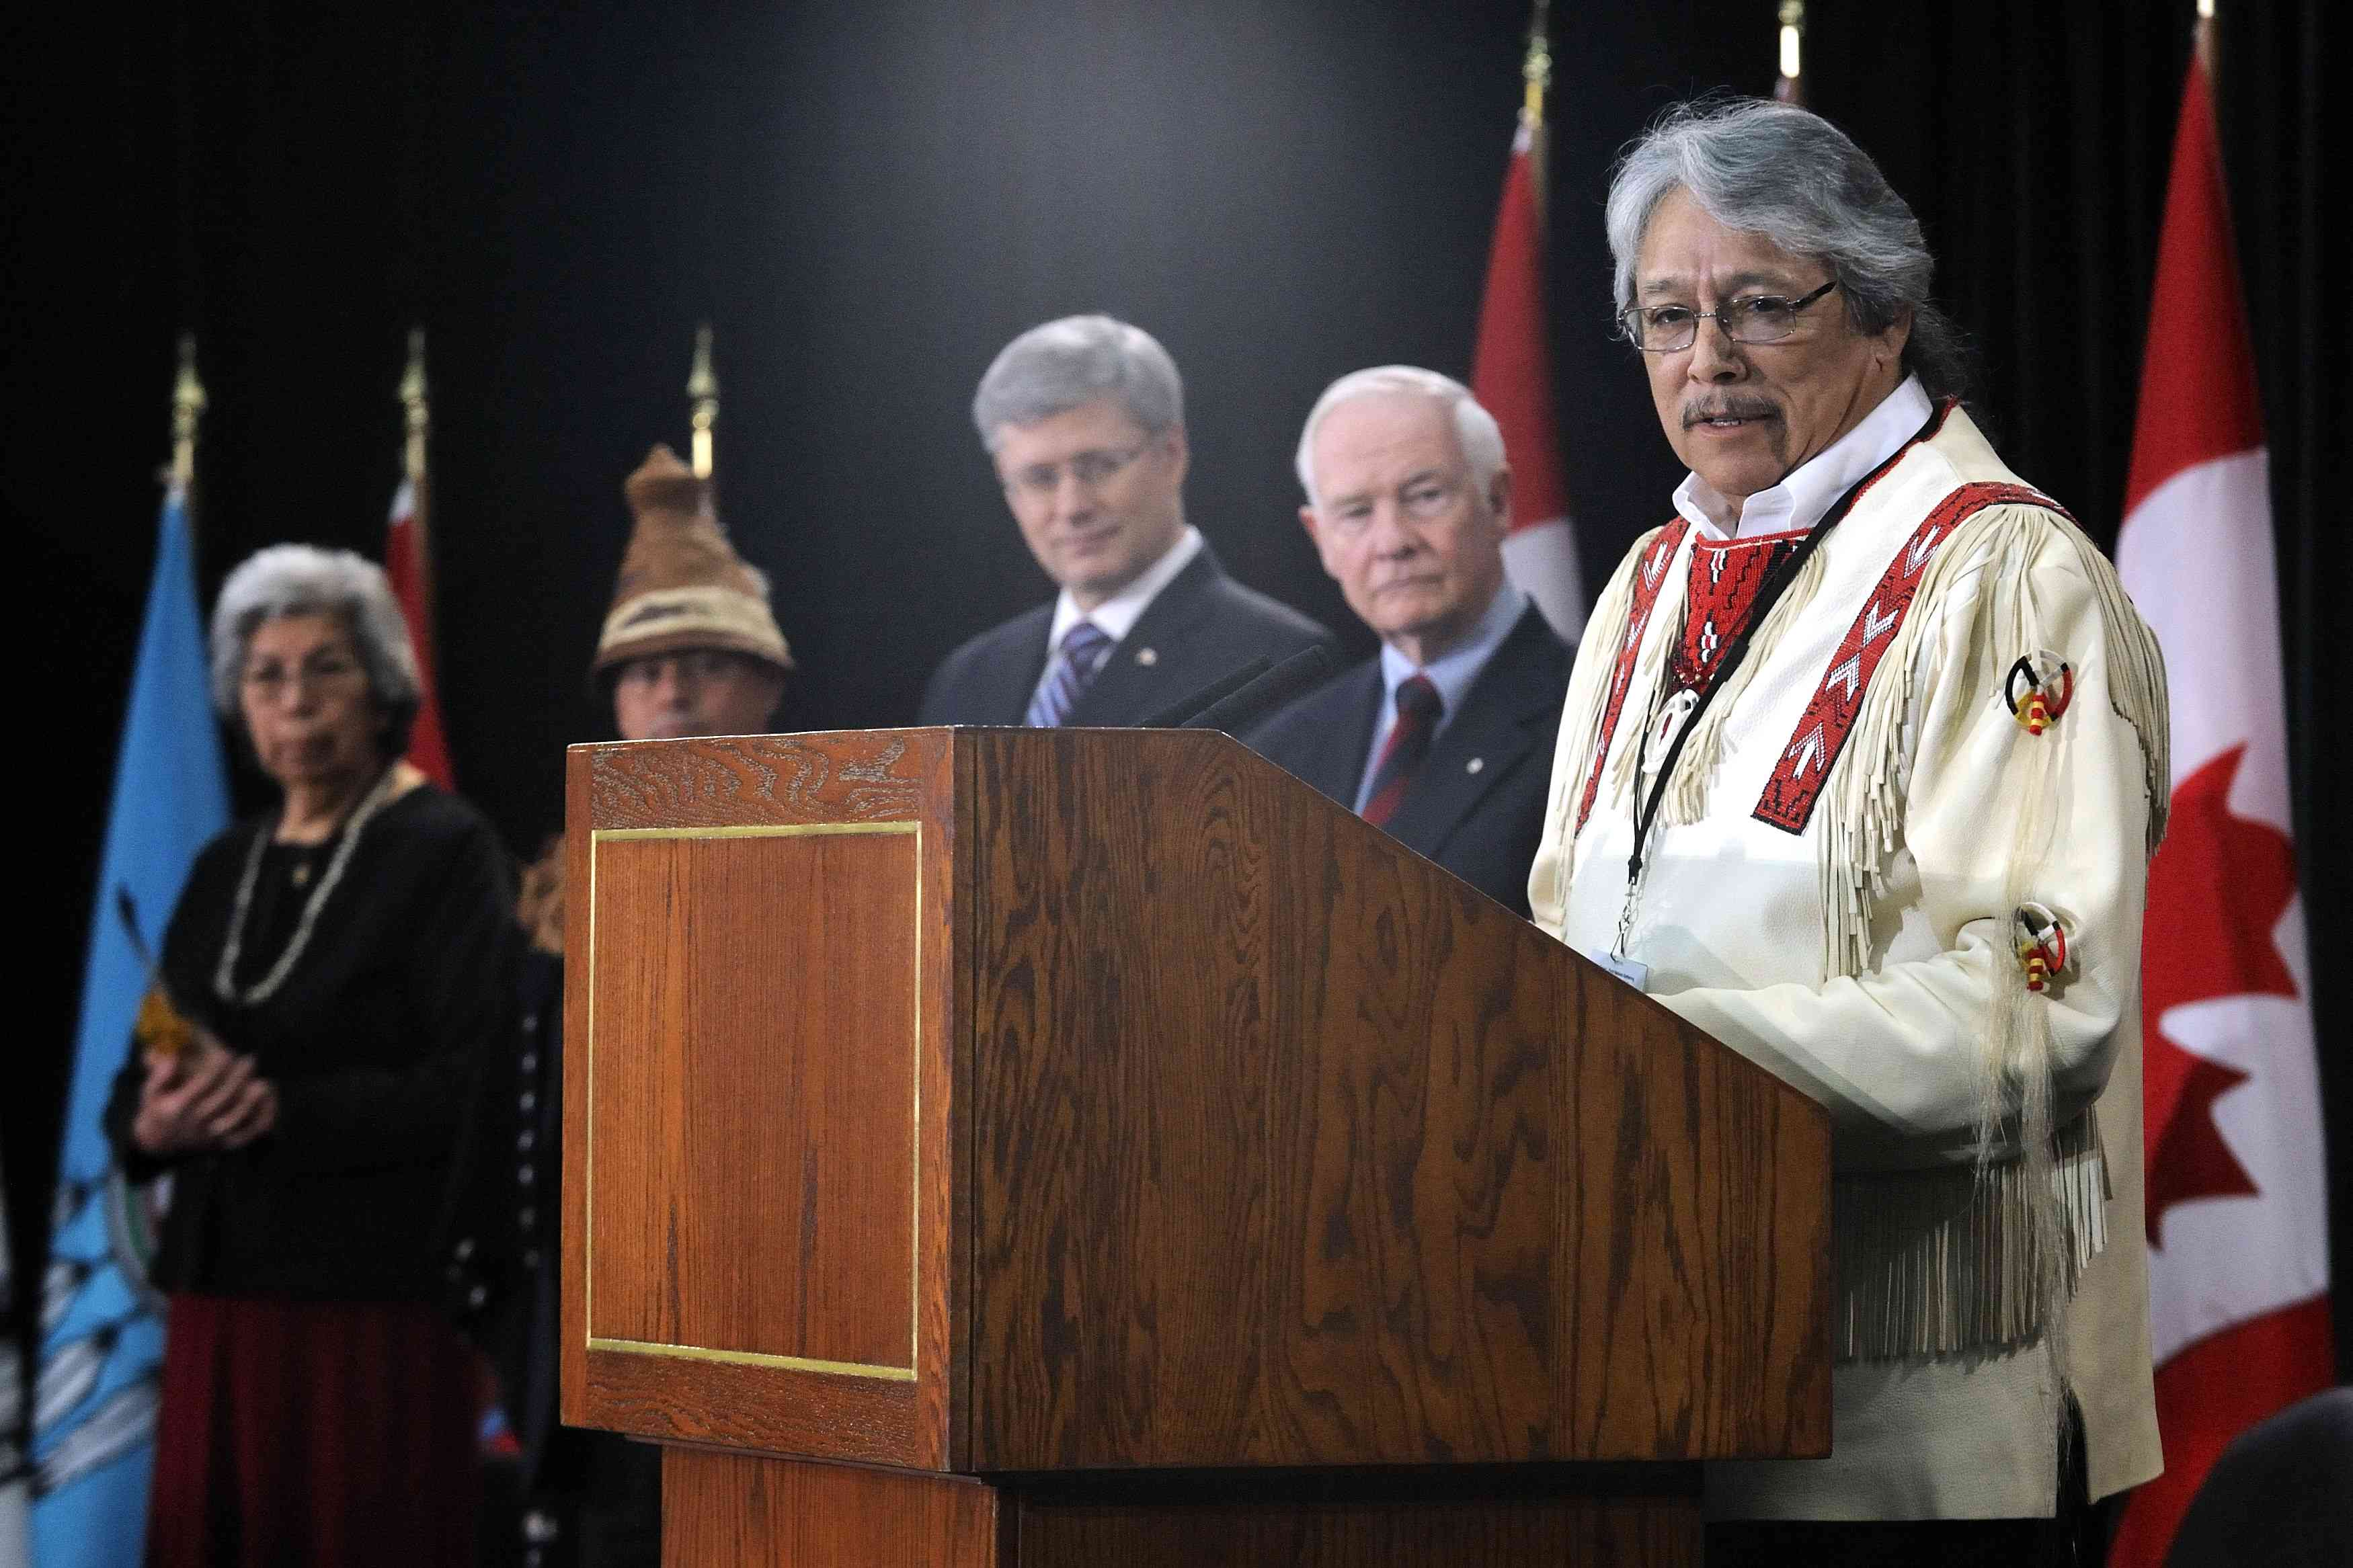 Elder Dave Courchene explained the significance of the Honour Song performed when the procession was entering Victoria Hall, at the John G. Diefenbaker building, in Ottawa.